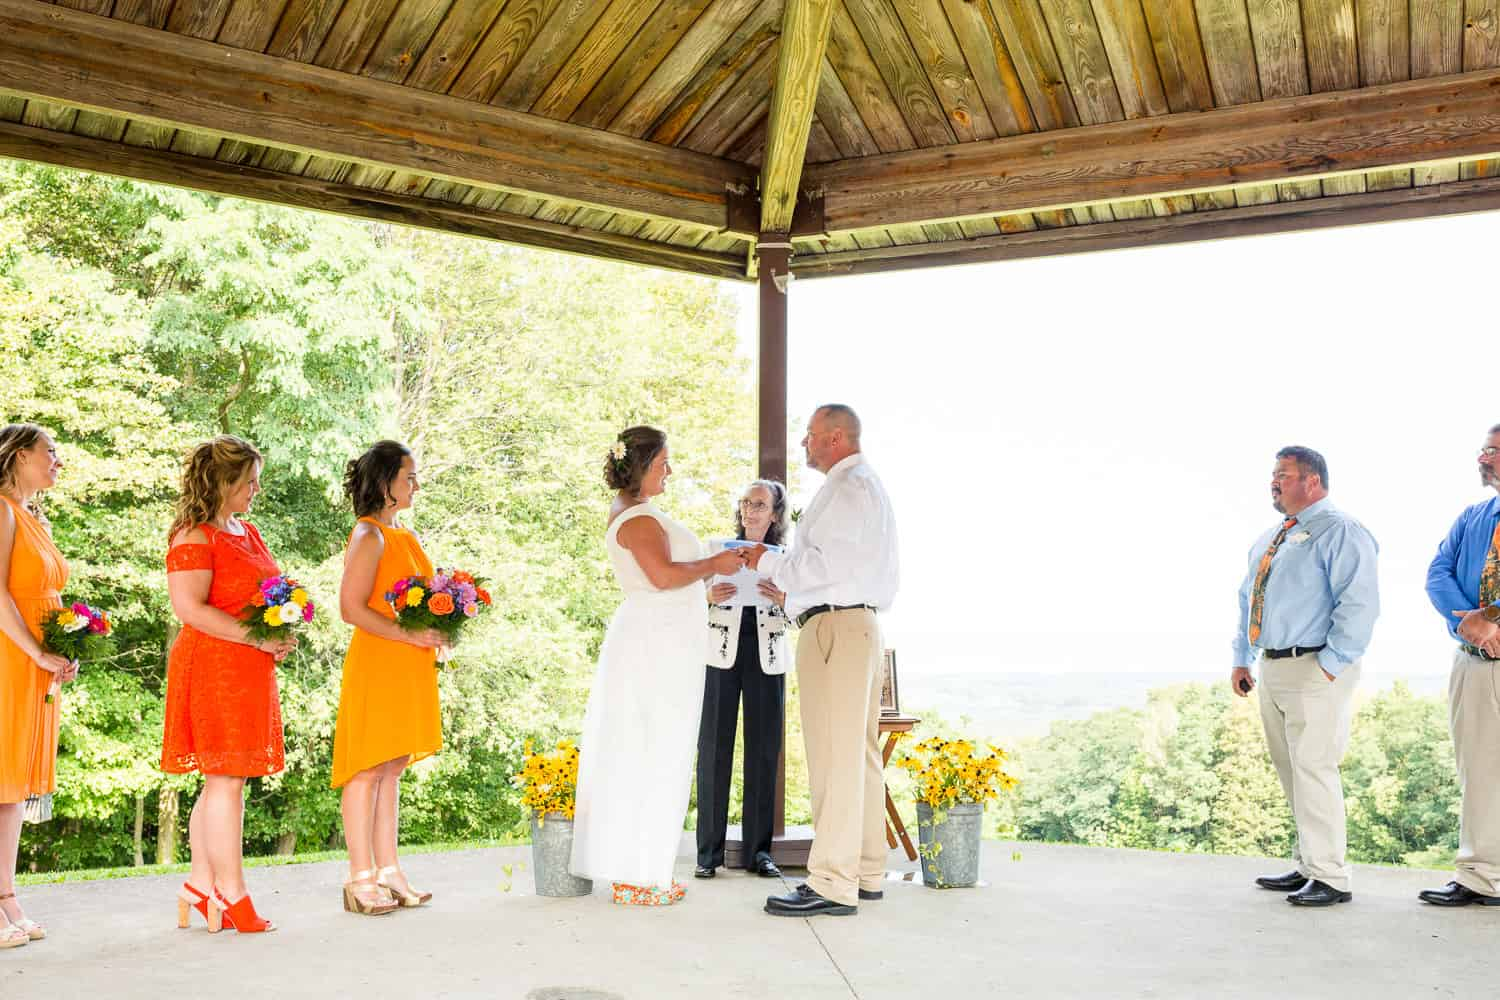 Outdoor wedding at Luensman Overview Park on Thayer Hill.